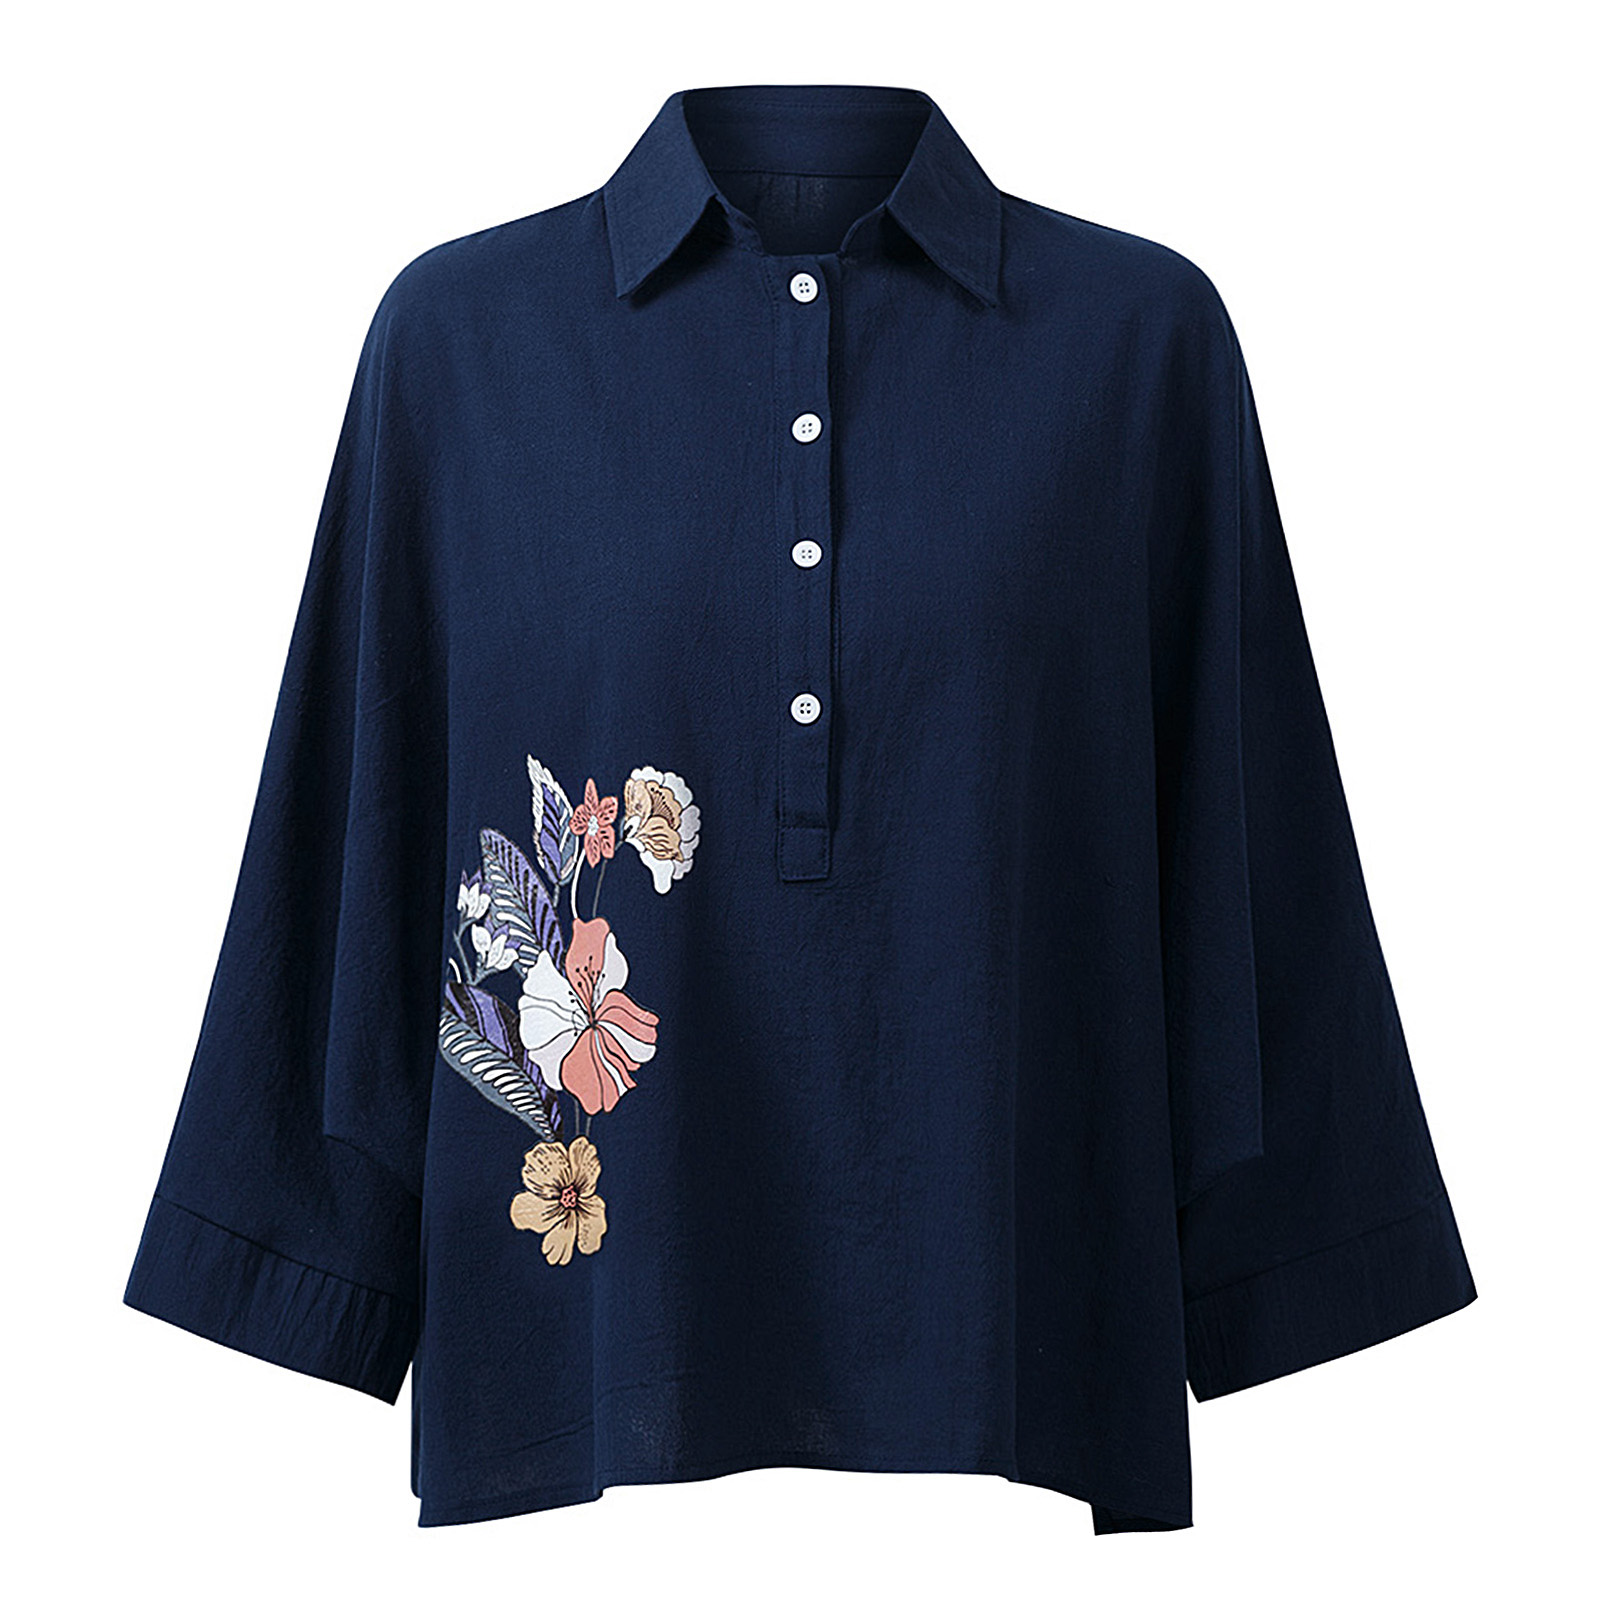 EaseHut-Women-Vintage-Blouse-Turn-Down-Collar-Long-Batwing-Sleeve-Casual-Loose-Tops-Female-Plus-Size